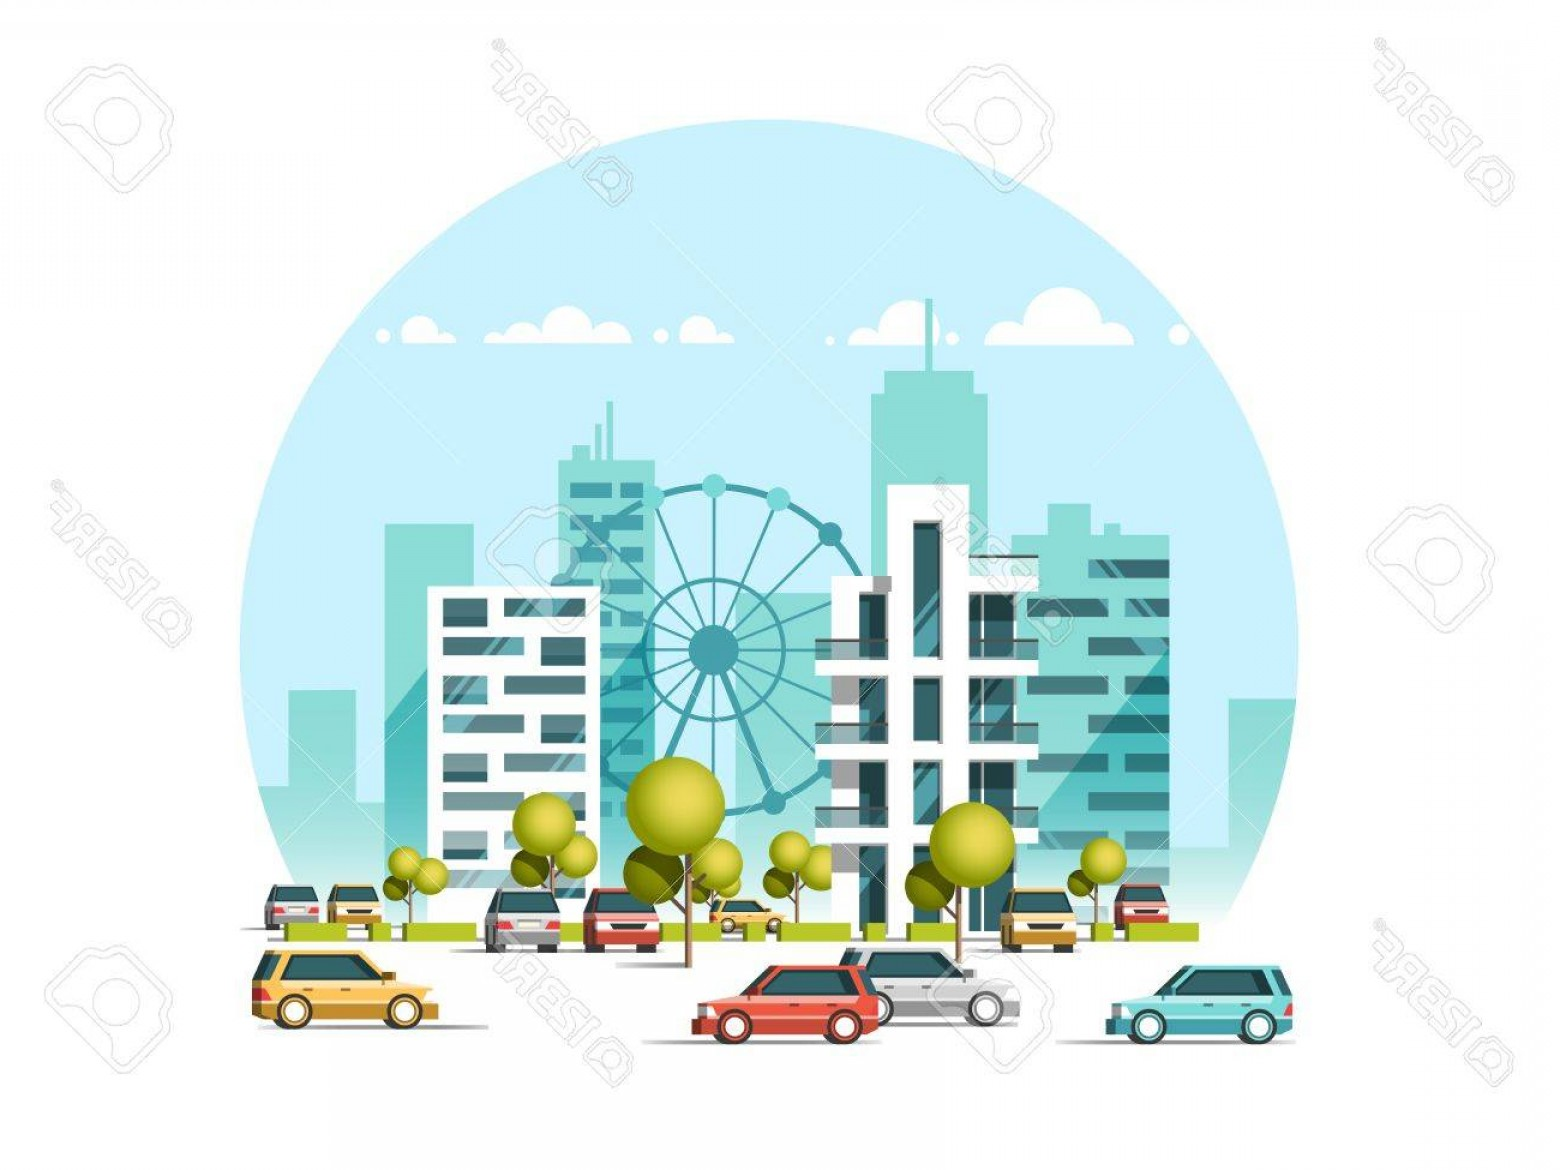 Cars Skyline Vector: Photostock Vector Vector Illustration Of Cars Parking Along The Street Traffic In Downtown City Skyscrapers Building S